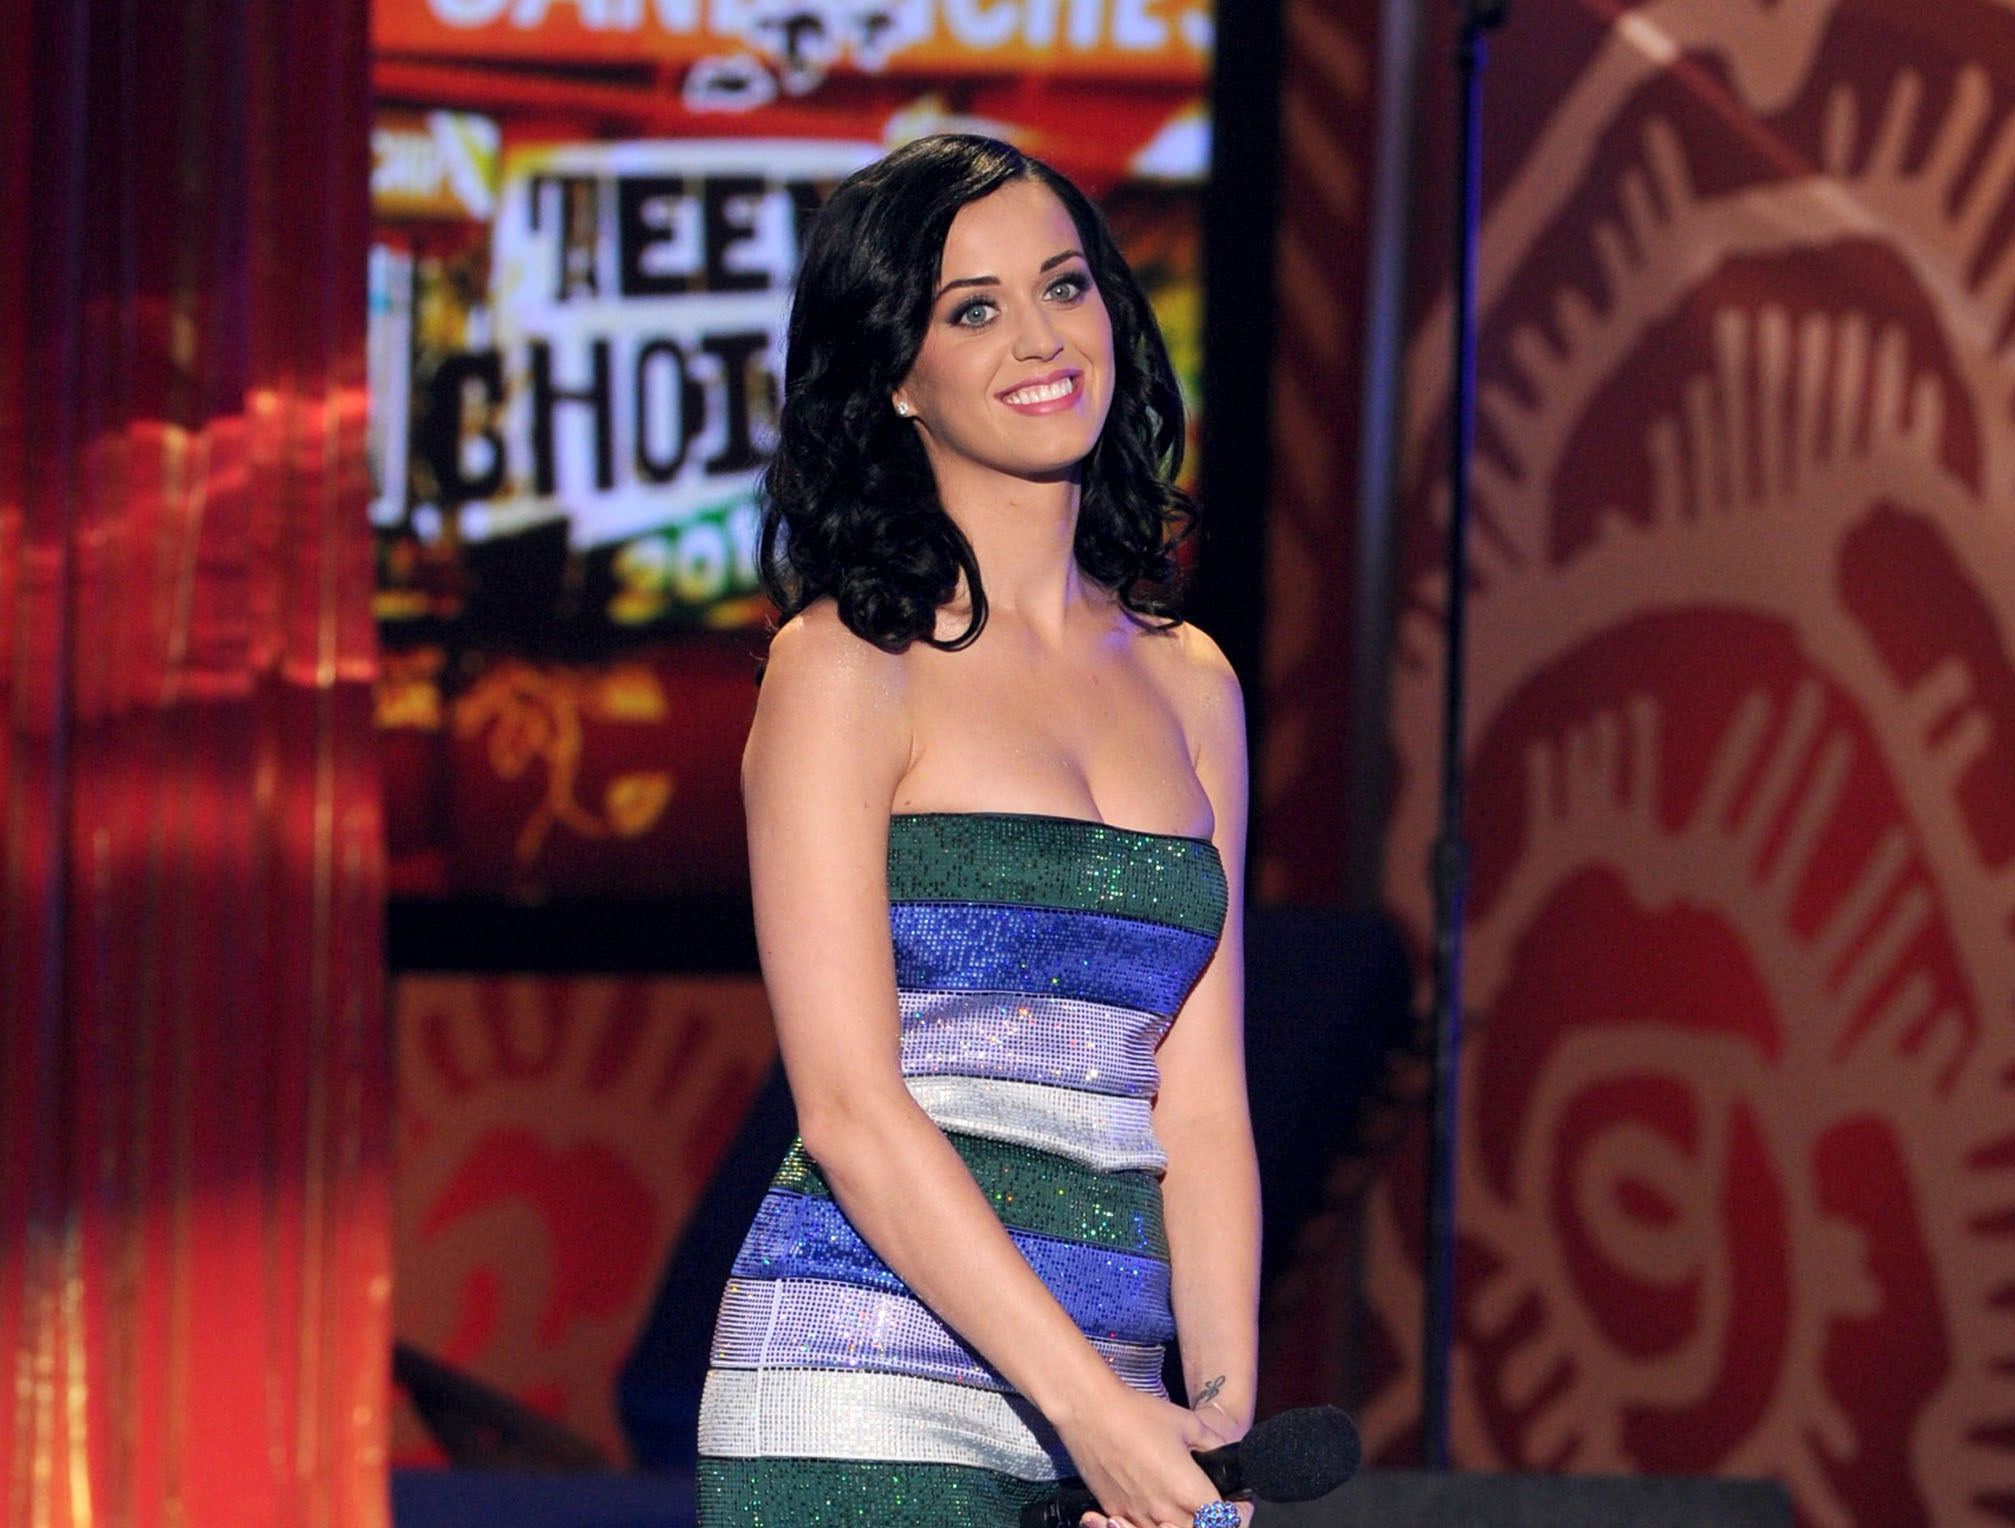 Katy Perry standing on stage at the Teen Choice Awards in a green, blue, lavender, and silver tube dress.